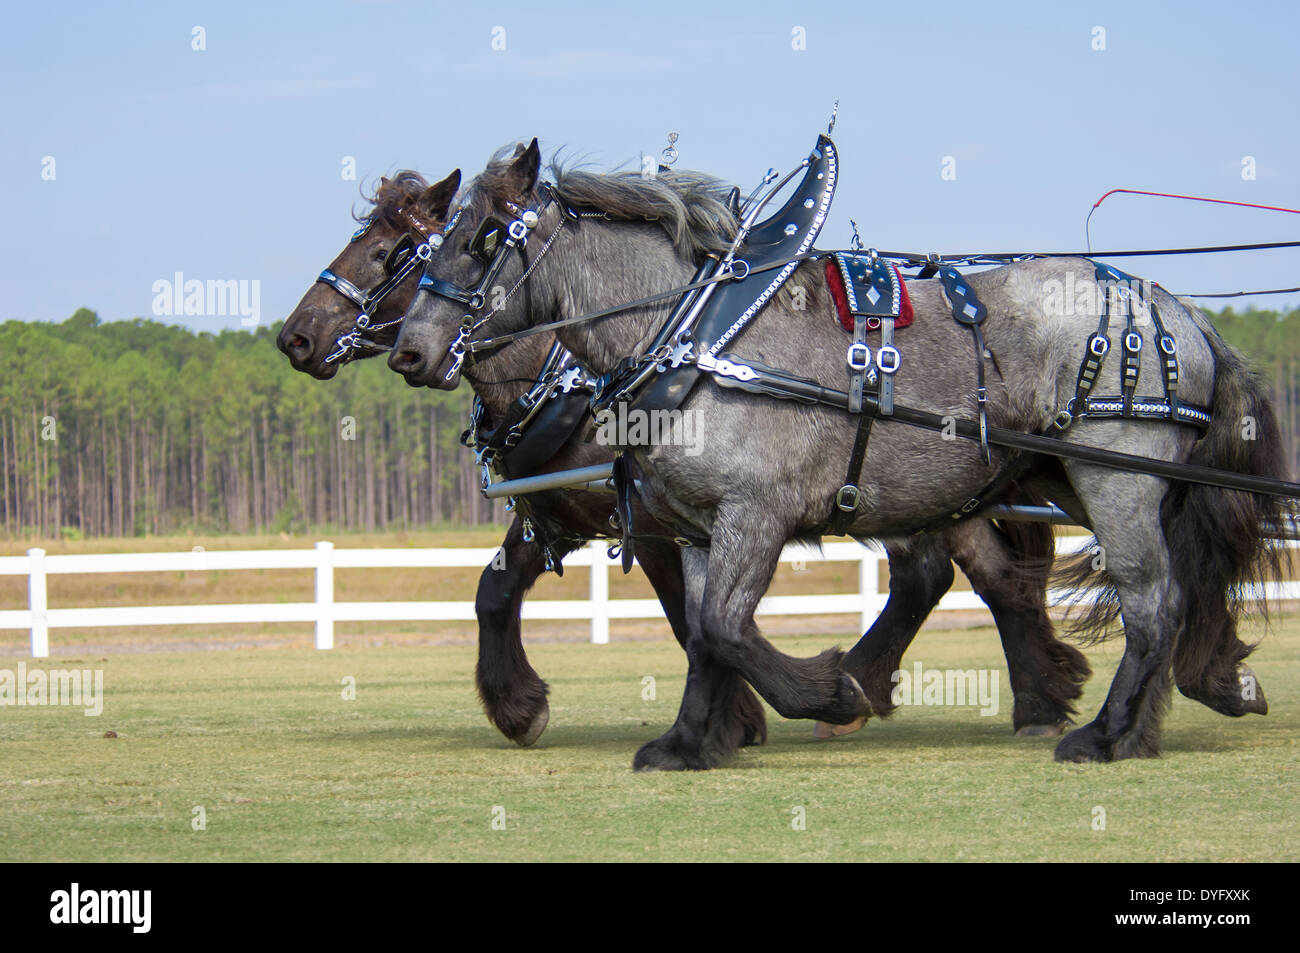 Brabant Draft Horse Pair Pulling Wagon In Show Tack Stock Photo Alamy